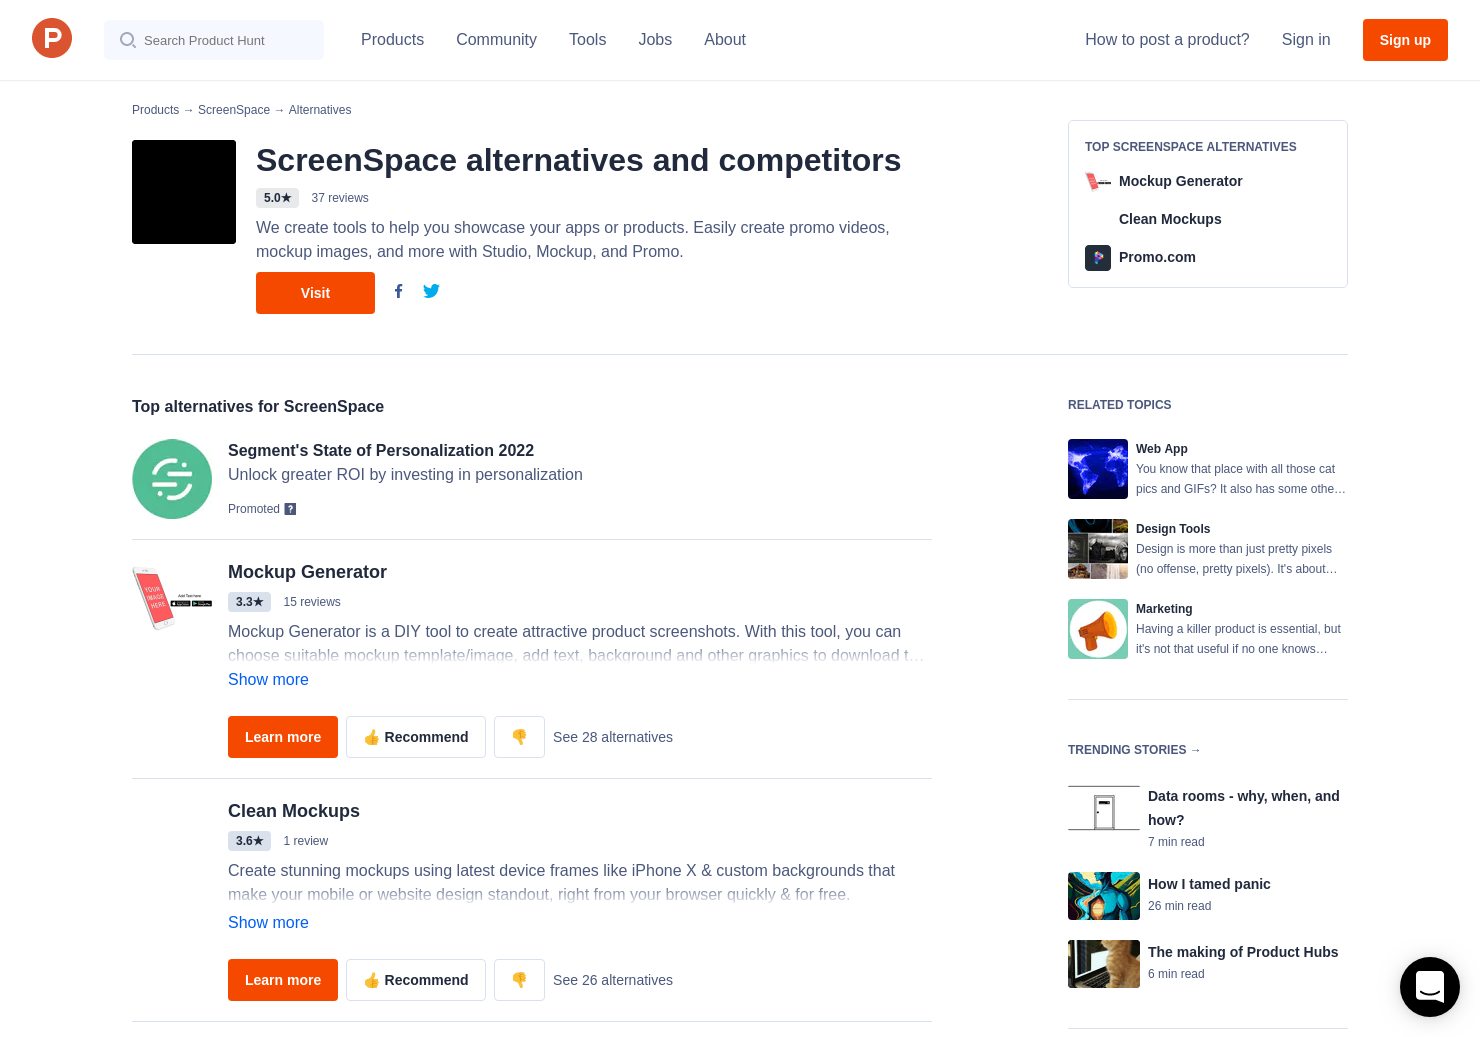 4 Alternatives to ScreenSpace Mockup | Product Hunt